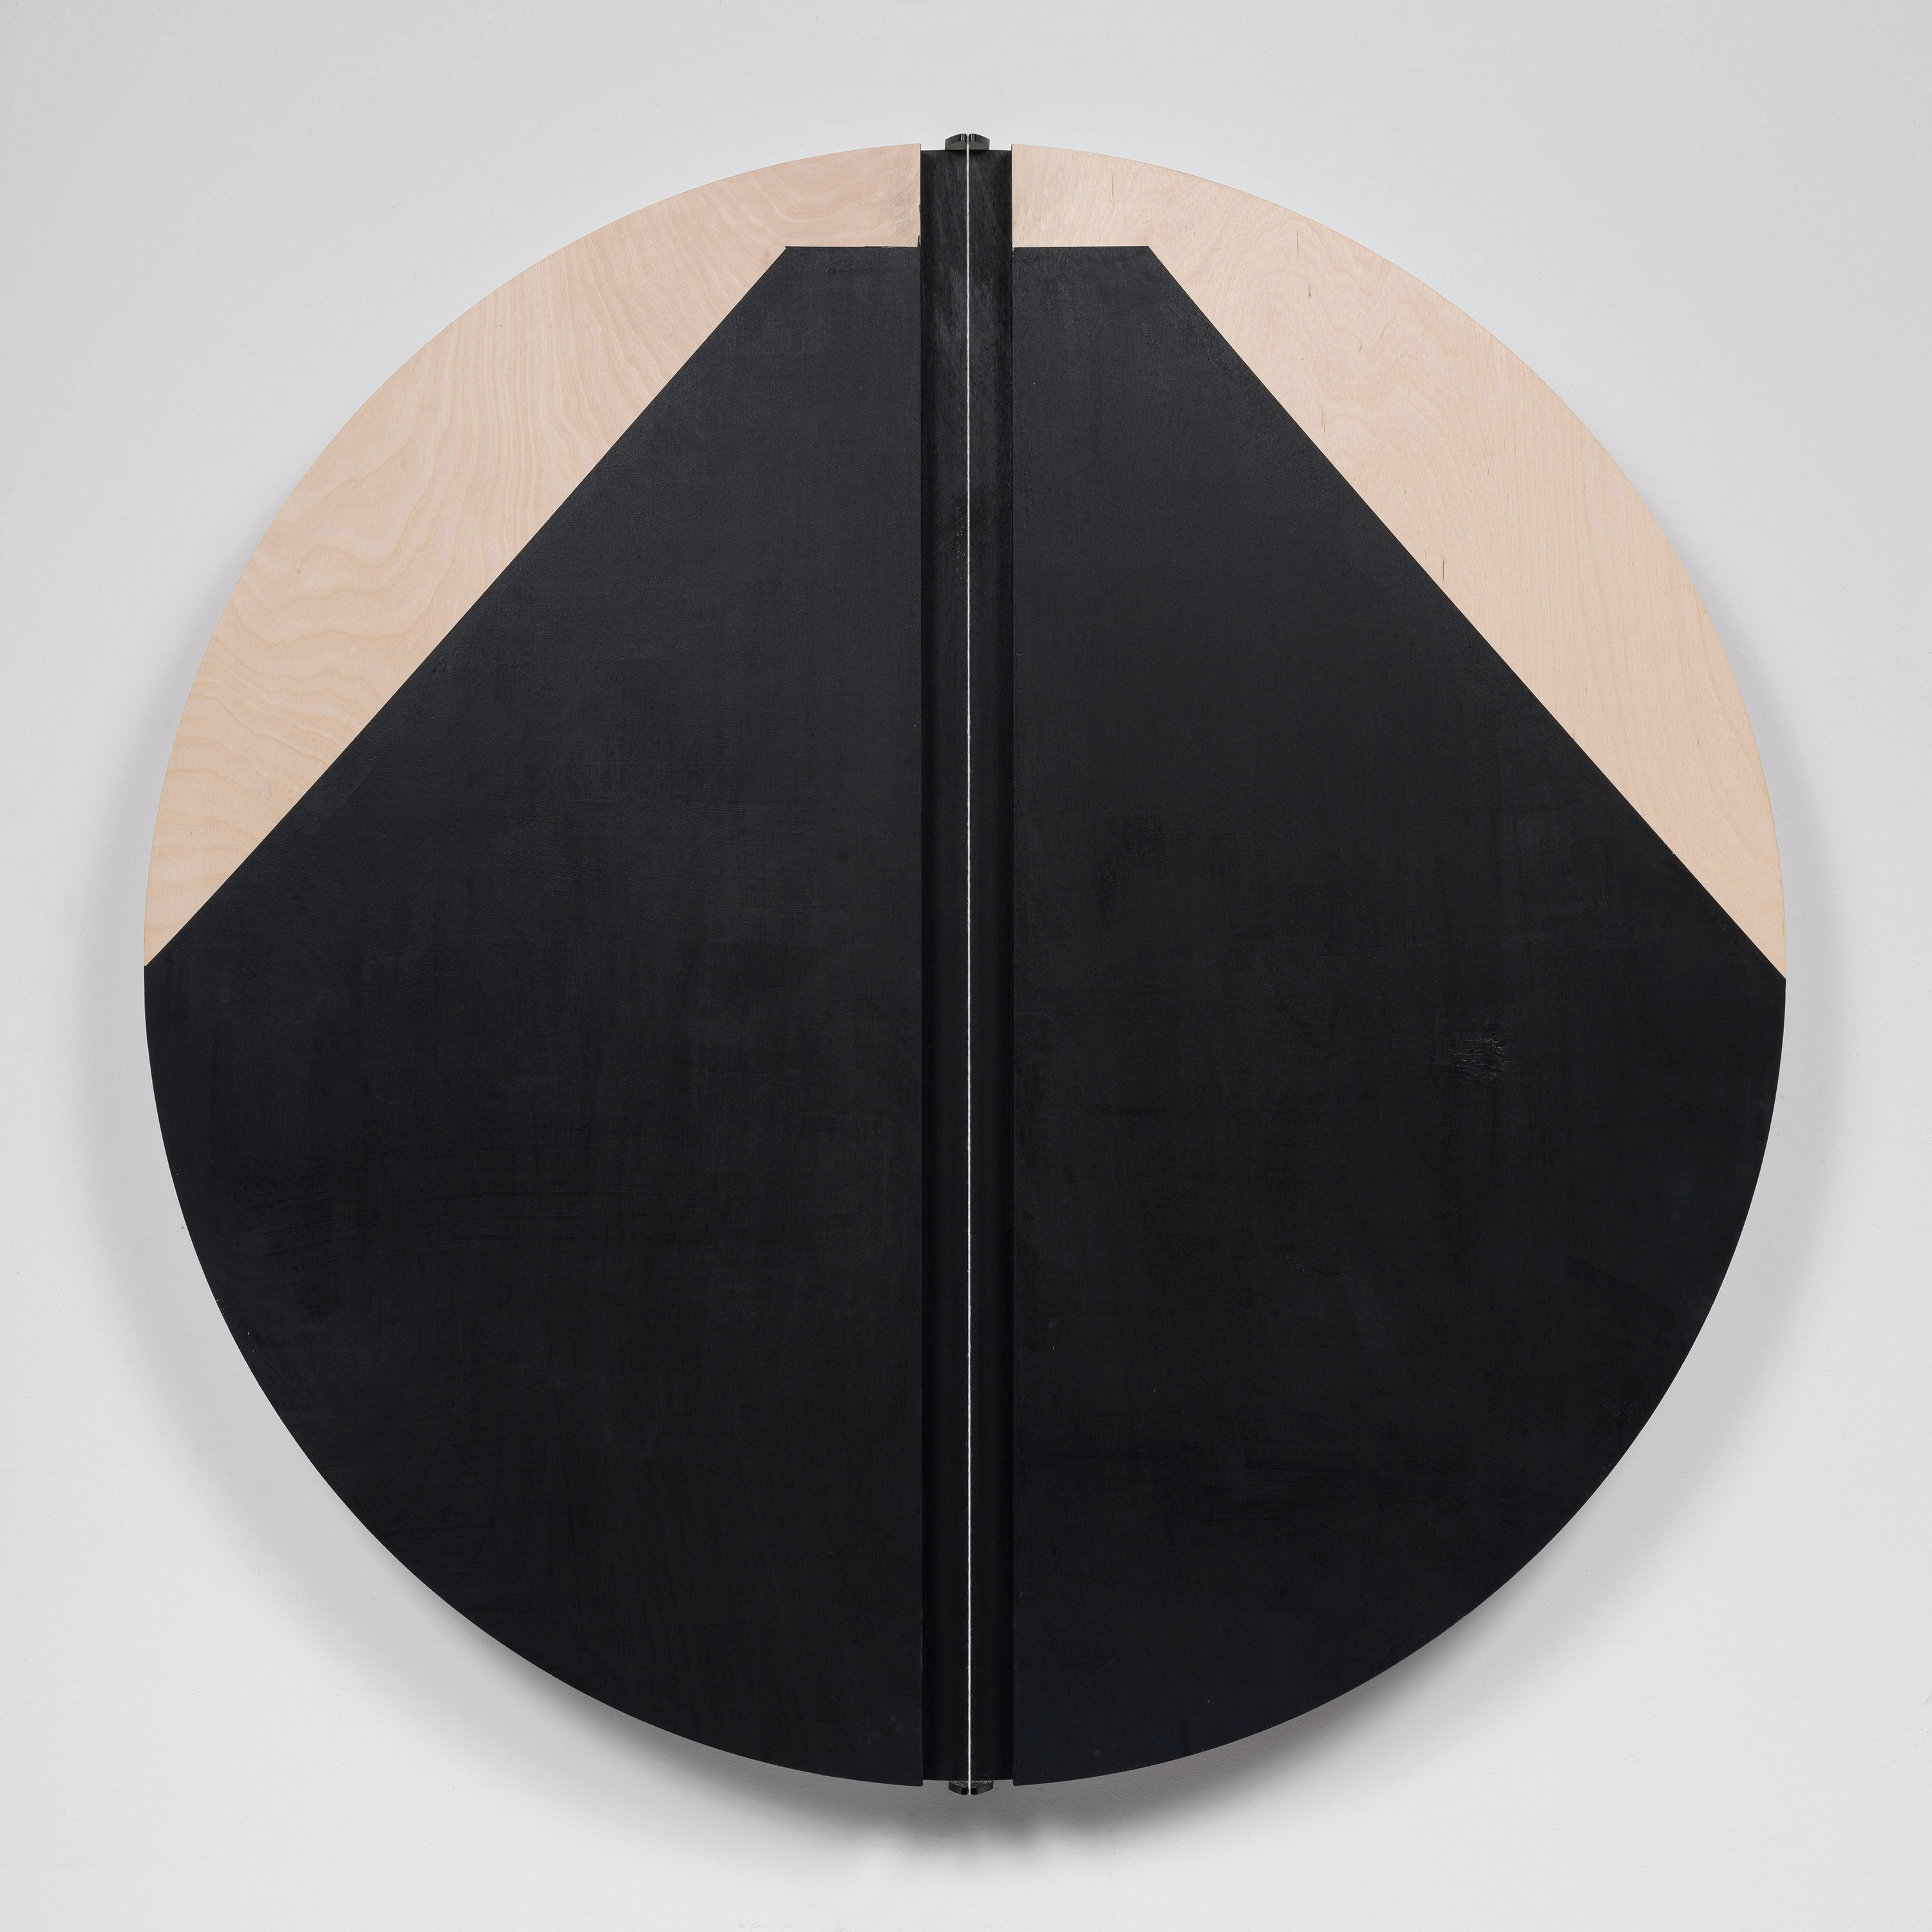 Torkwase Dyson, <em>I Am Everything That Will Save Me (Bird and Lava)</em>, 2020. Acrylic and string on wood, 36 inch diameter. © Torkwase Dyson. Courtesy Pace Gallery. Photo: Kris Graves.